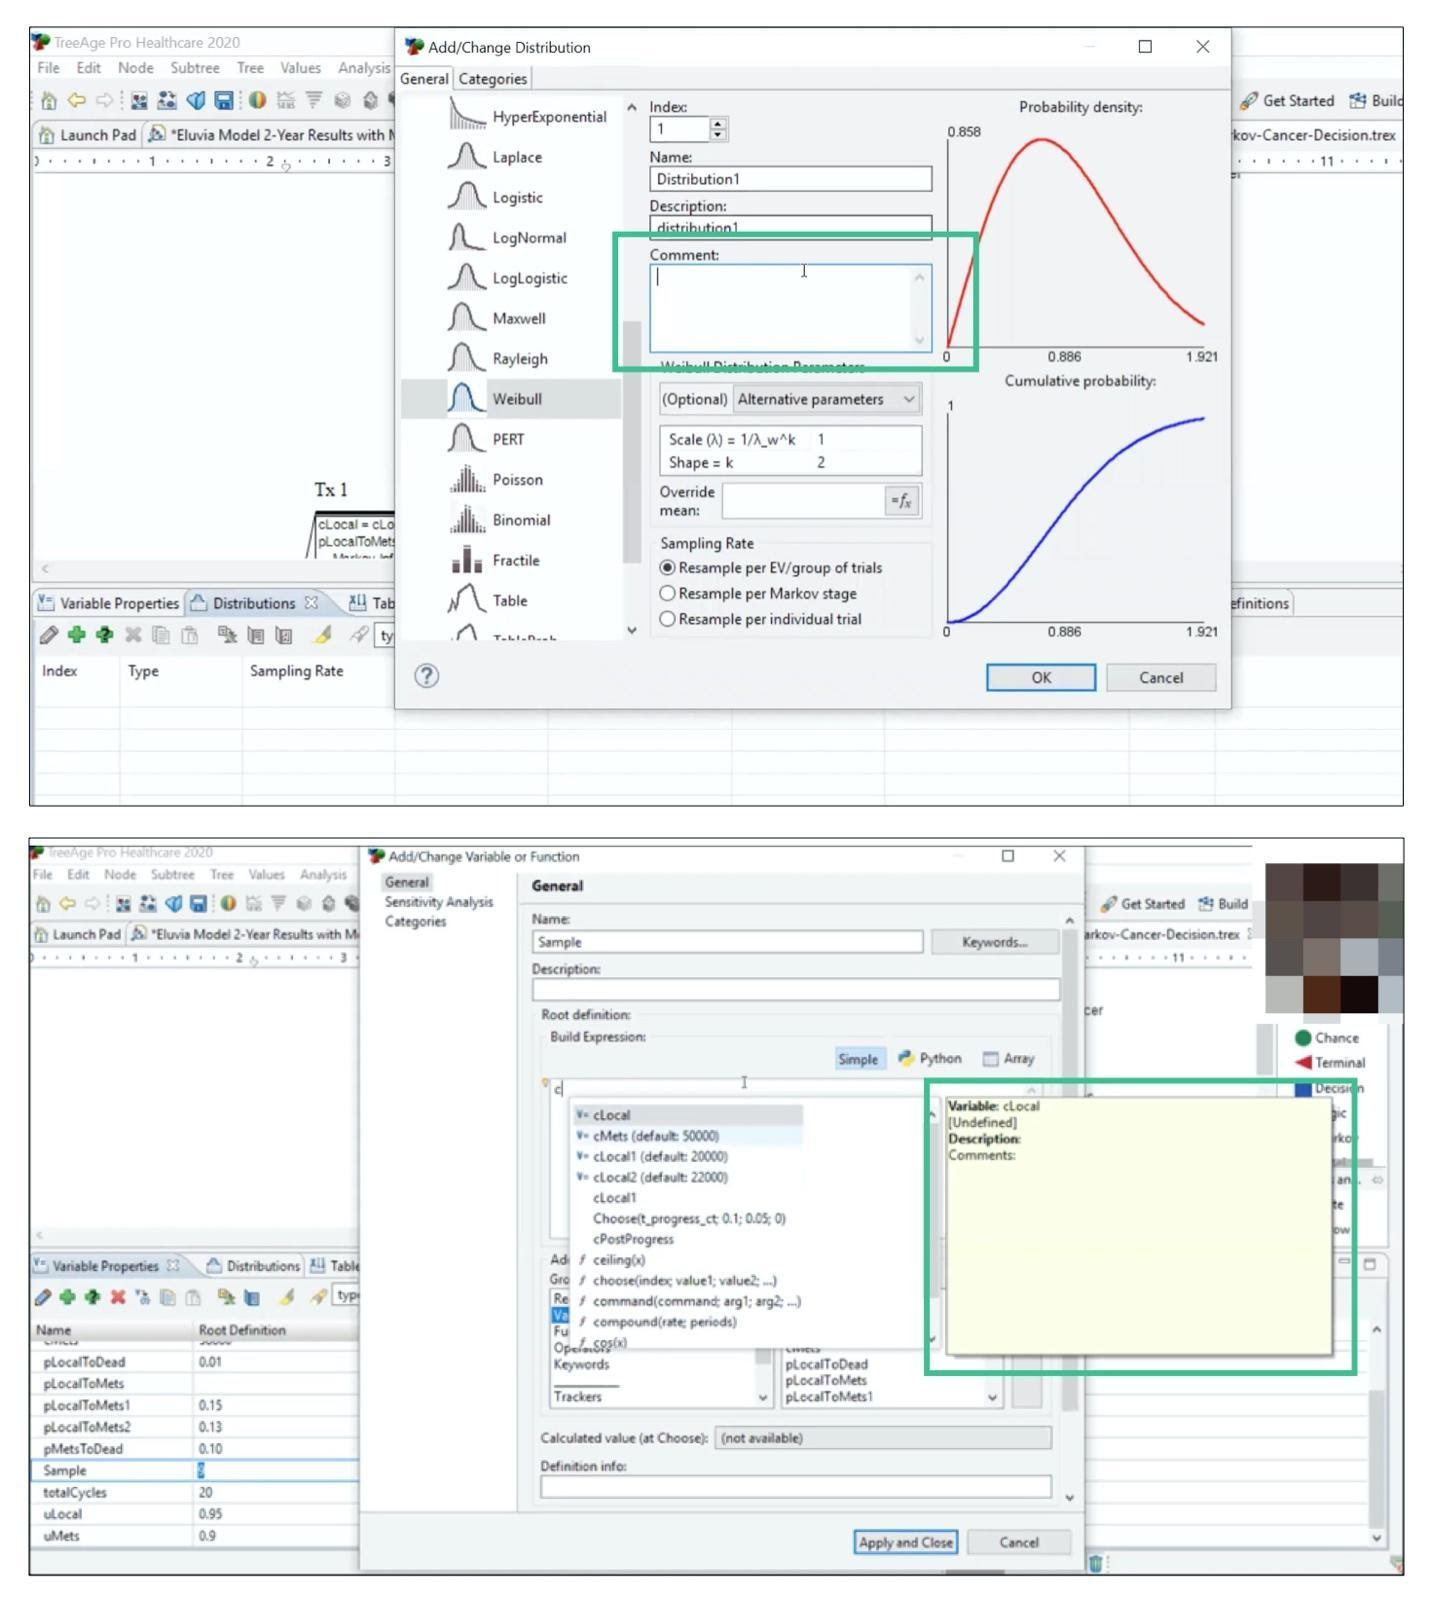 2 screenshots of the same web application. one shows a feature to add a comment during data analysis. the second screenshot shows a user accessing a previously-created comment within a data model.